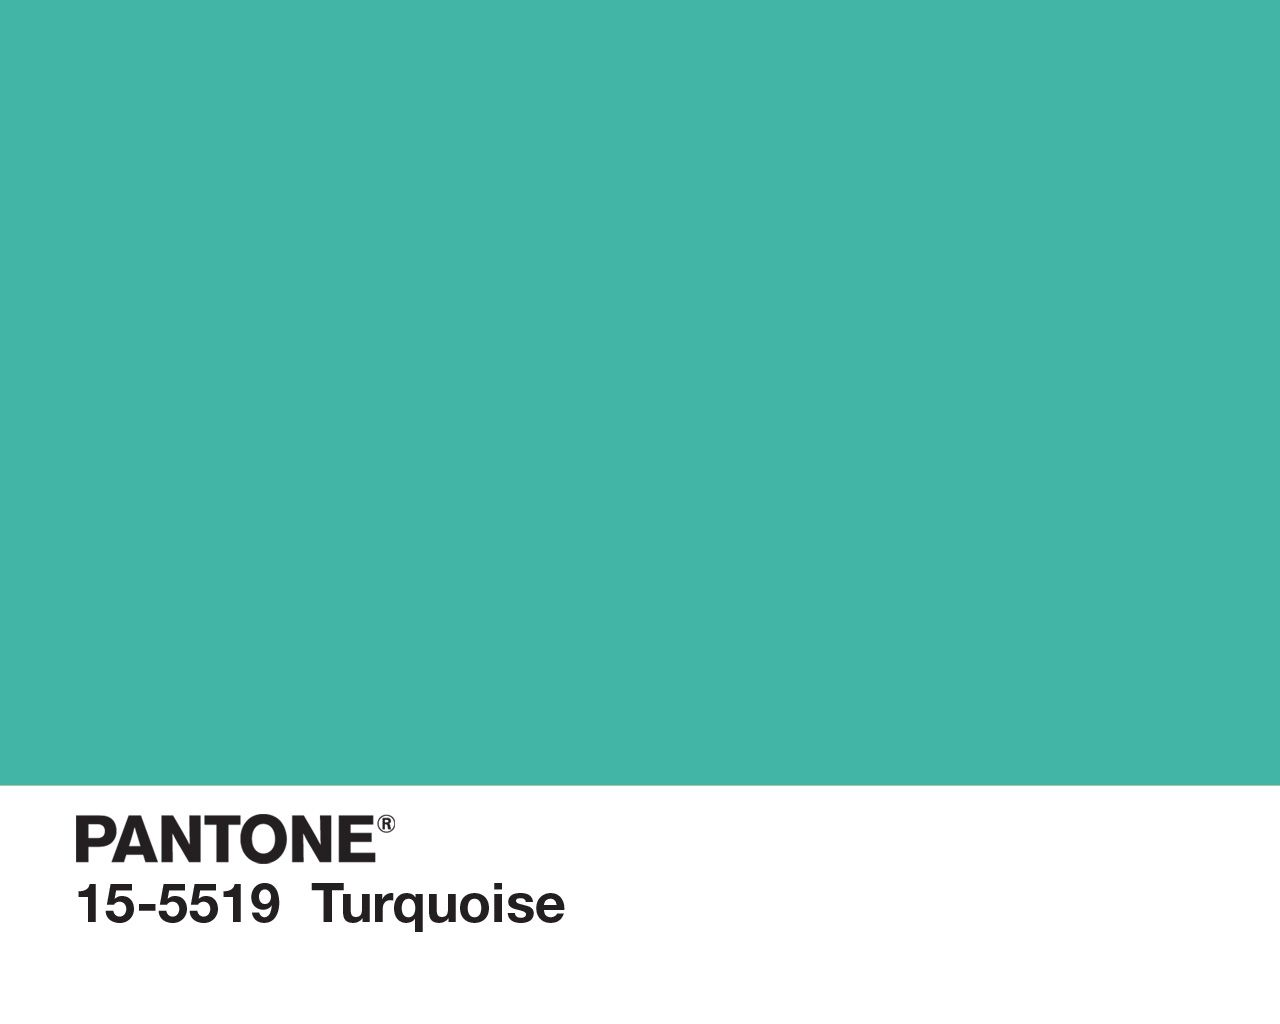 Turquoise Pantone Turquoise Paint Colors Turquoise Painting